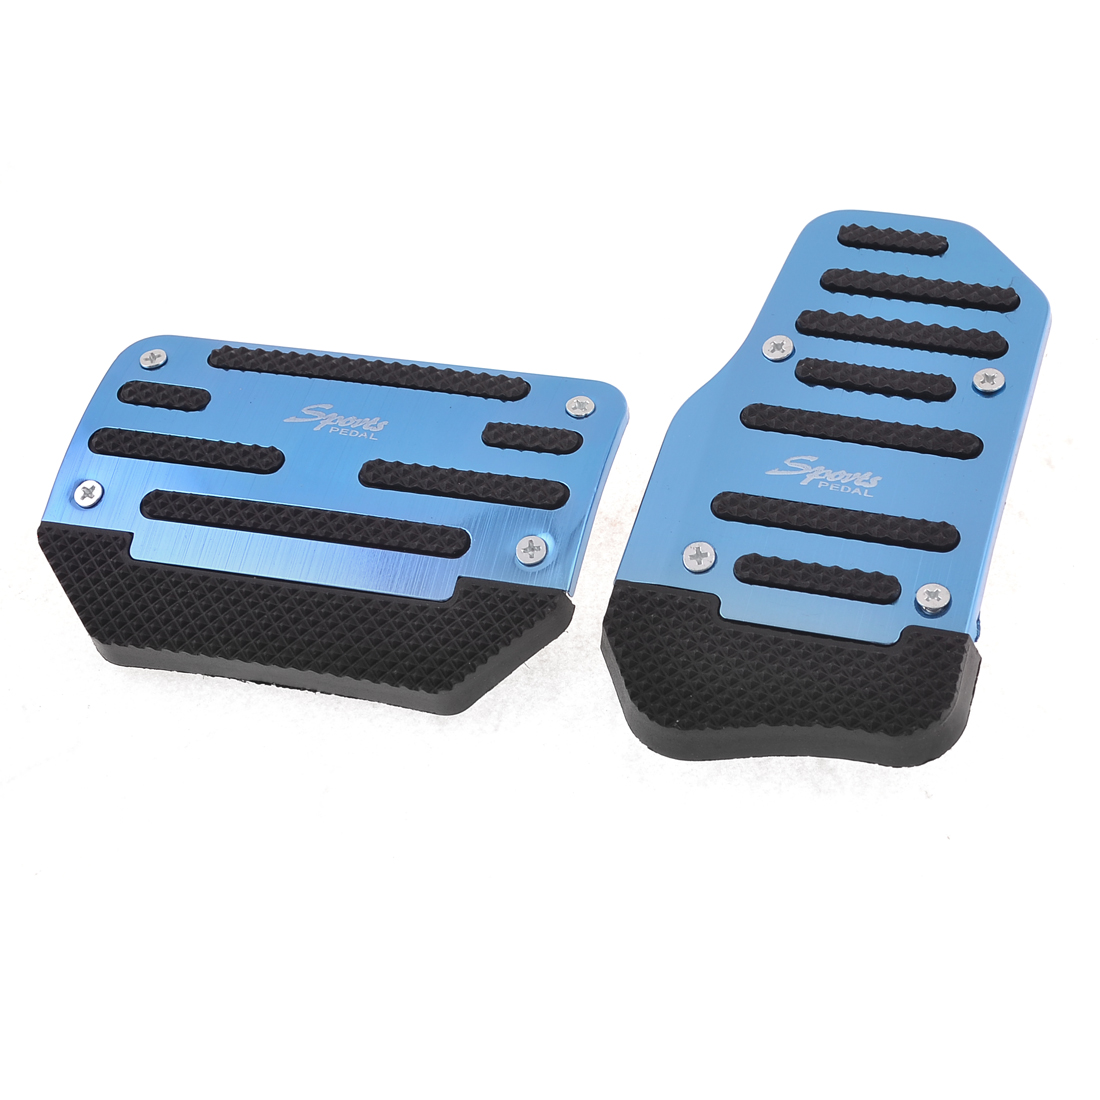 Automatic AT Auto Car Gas Brake Metal Pedal Covers Blue Black 2 Pcs